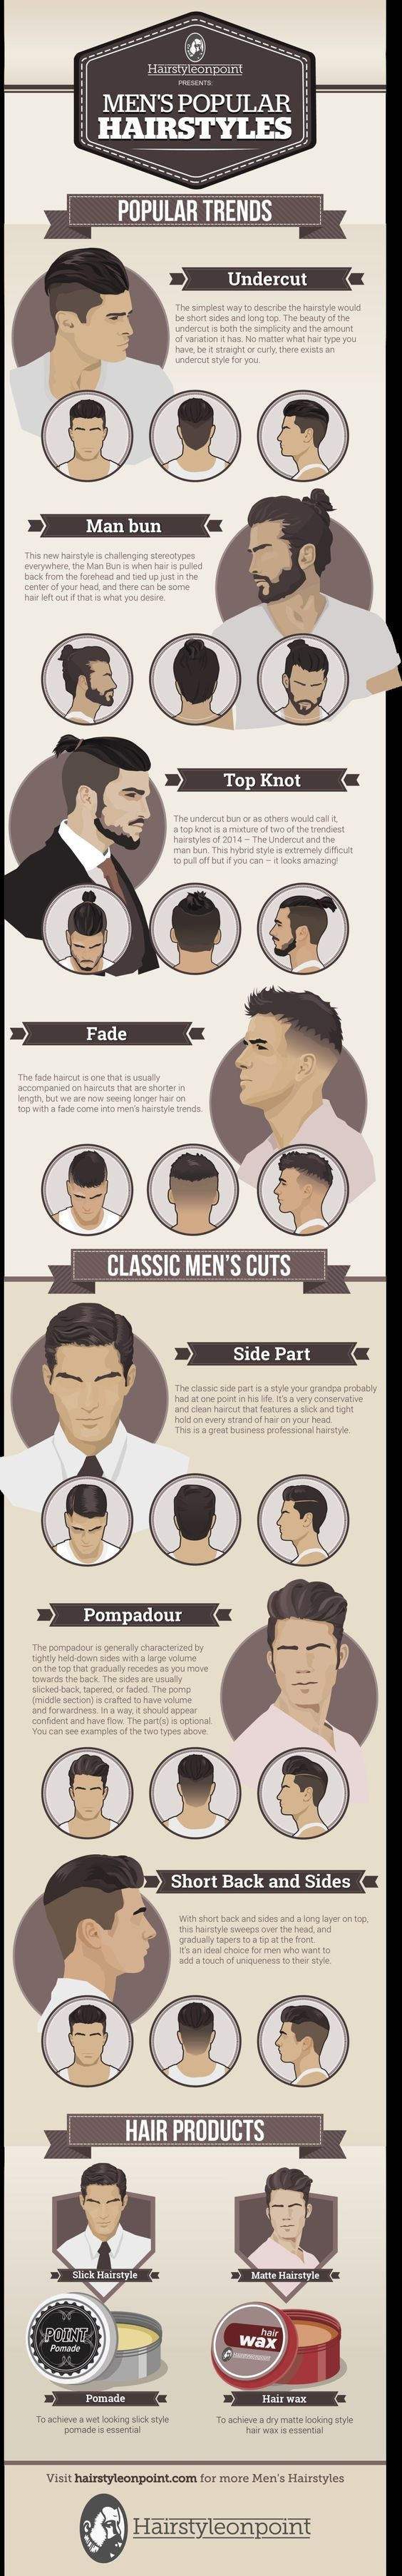 Different hairstyles for men and men's hair products.